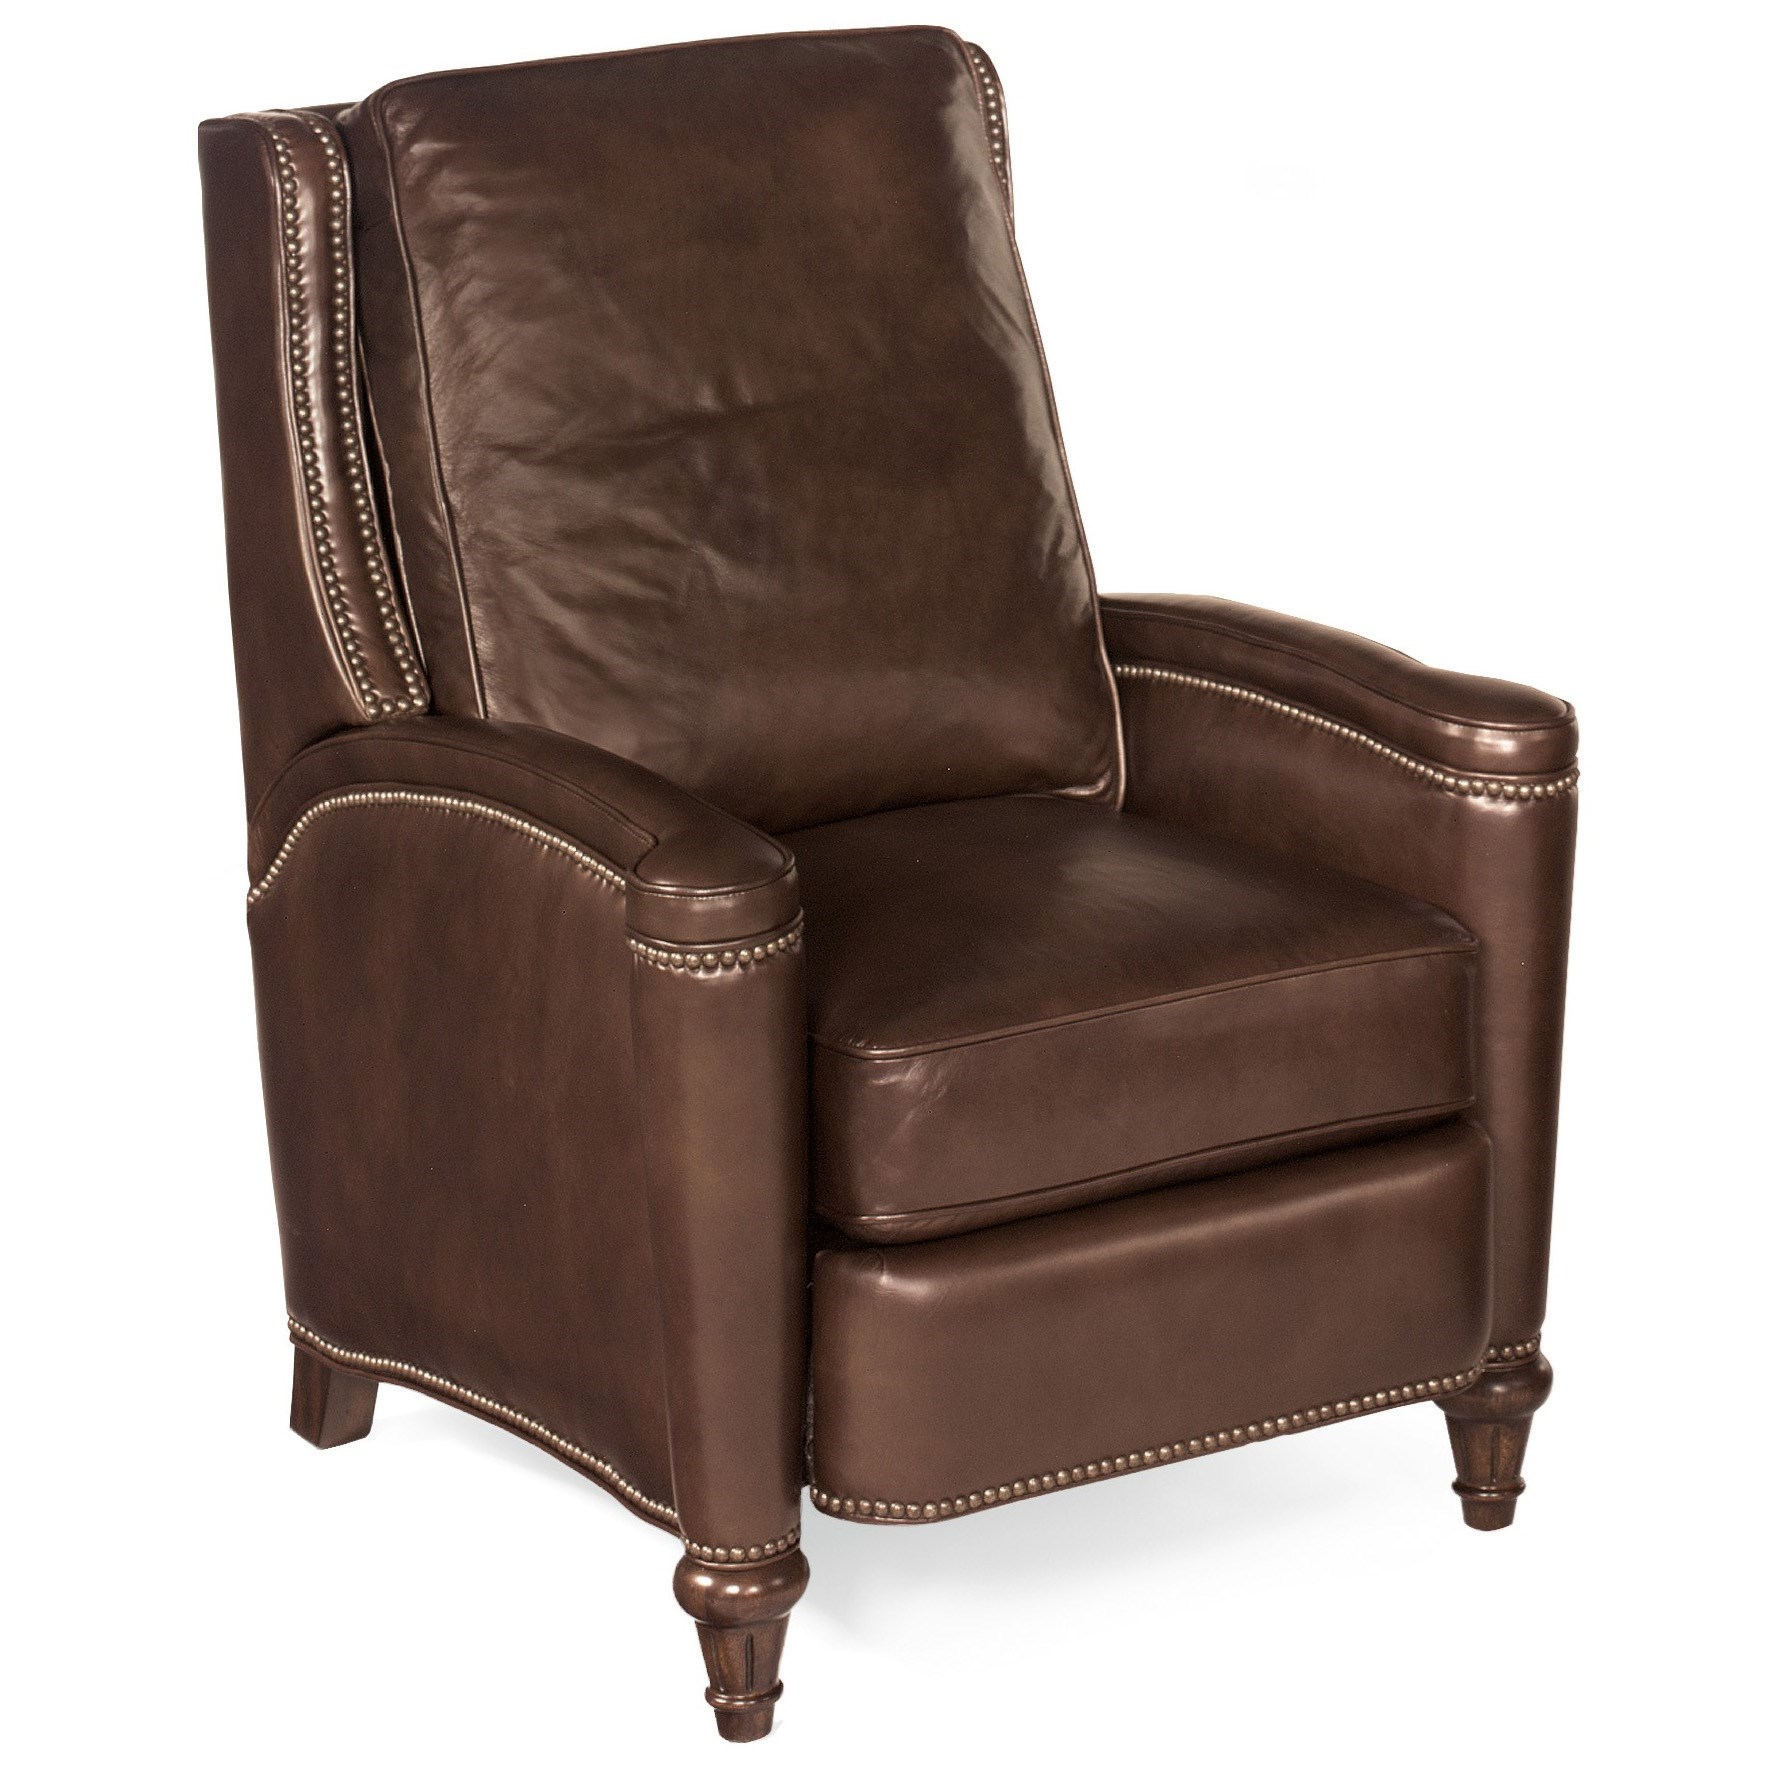 Rylea Push Back Recliner by Hooker Furniture at Miller Waldrop Furniture and Decor